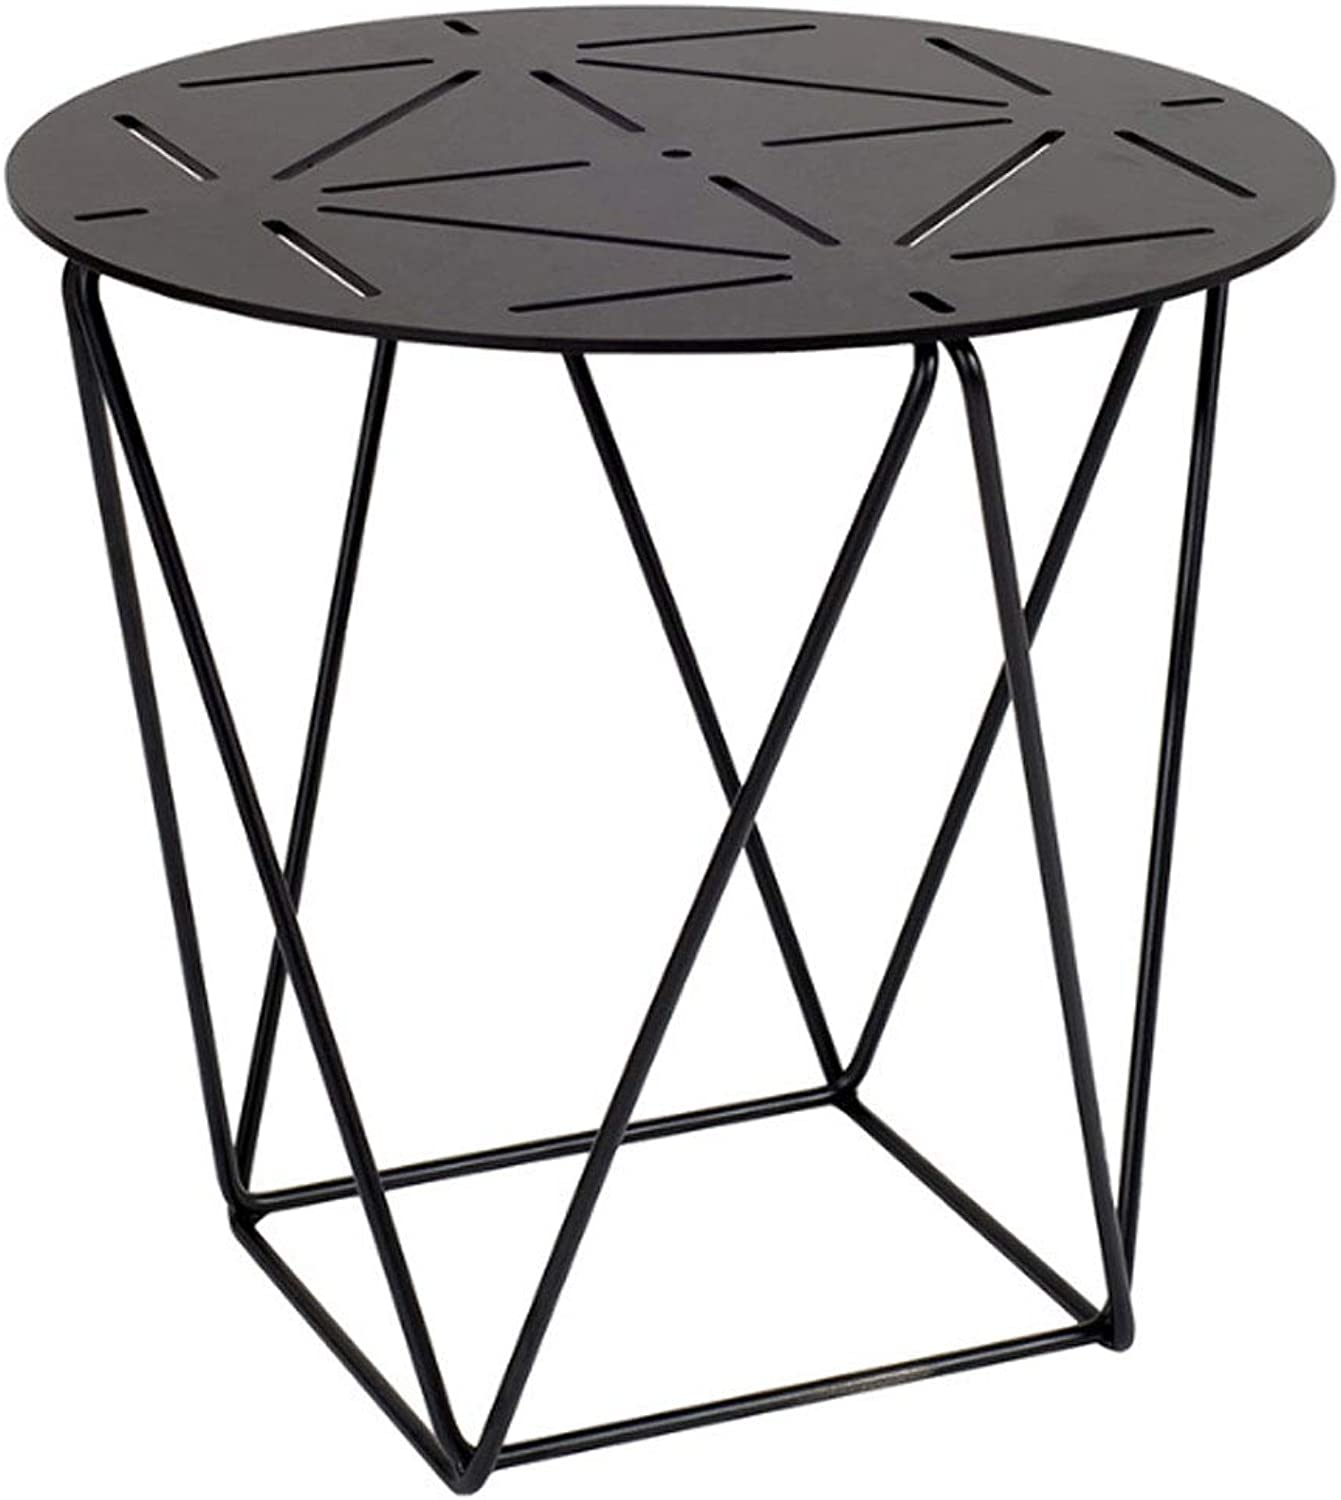 Round Wrought Iron Coffee Table Simple Metal Small Table Living Room Sofa Side Table Small Corner Table